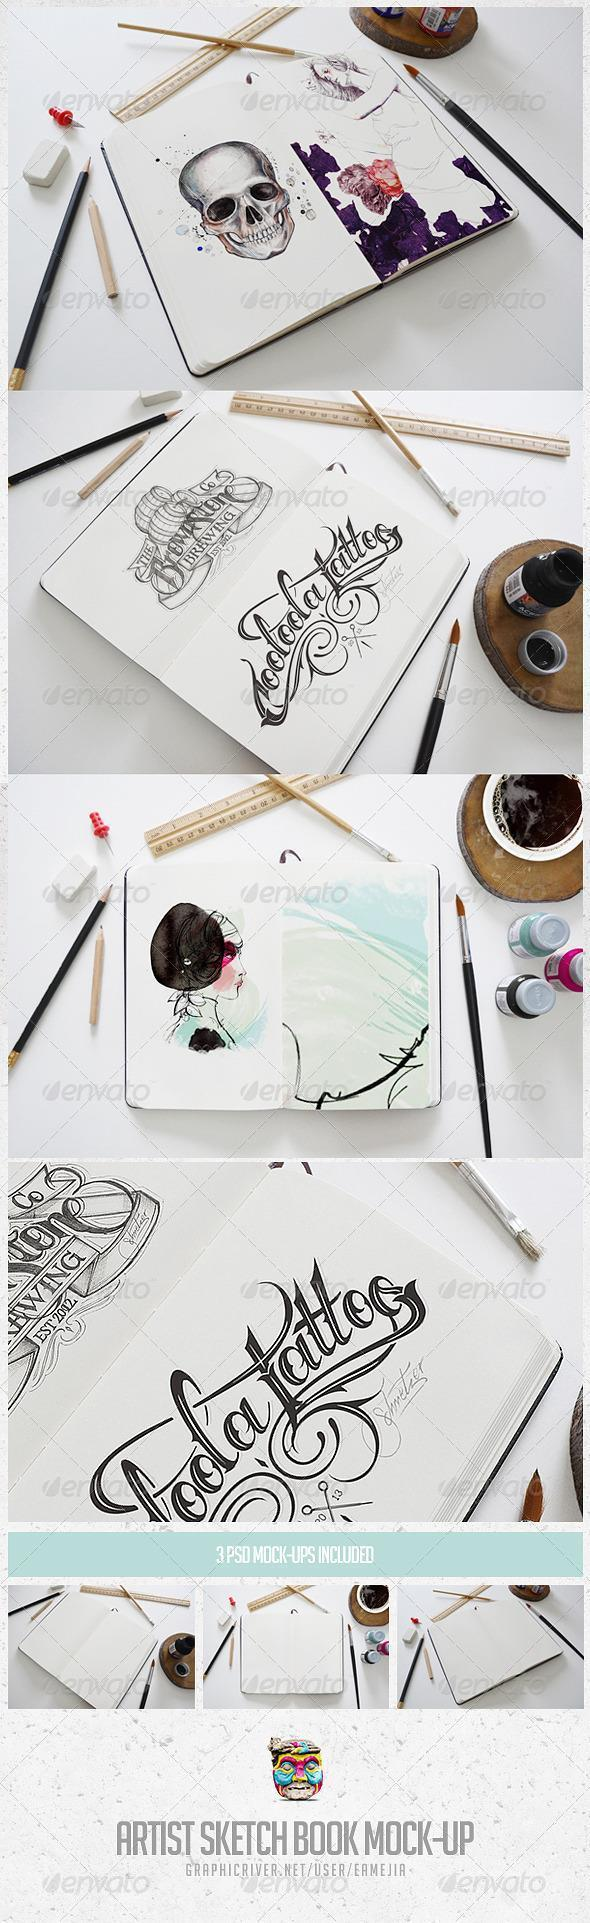 Artist Sketch and Paint Mockup Templates